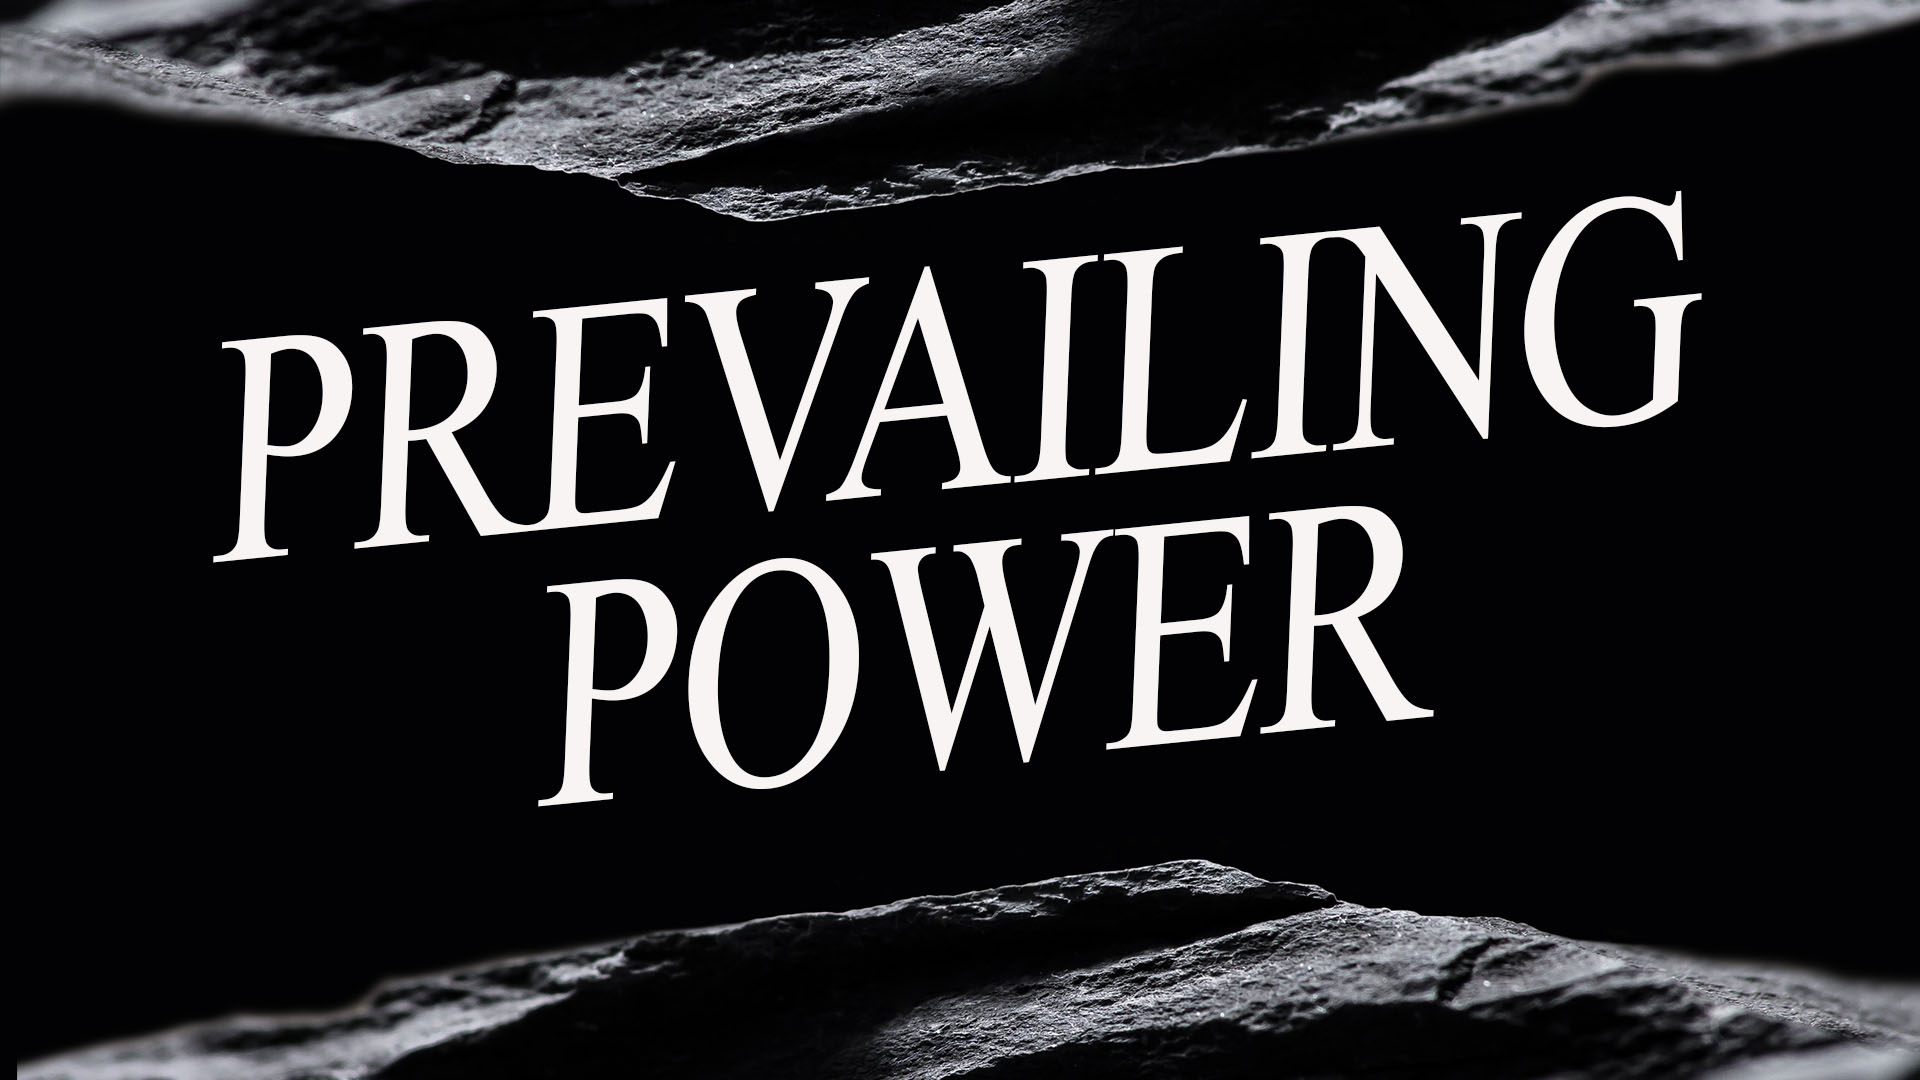 Prevailing Power Image